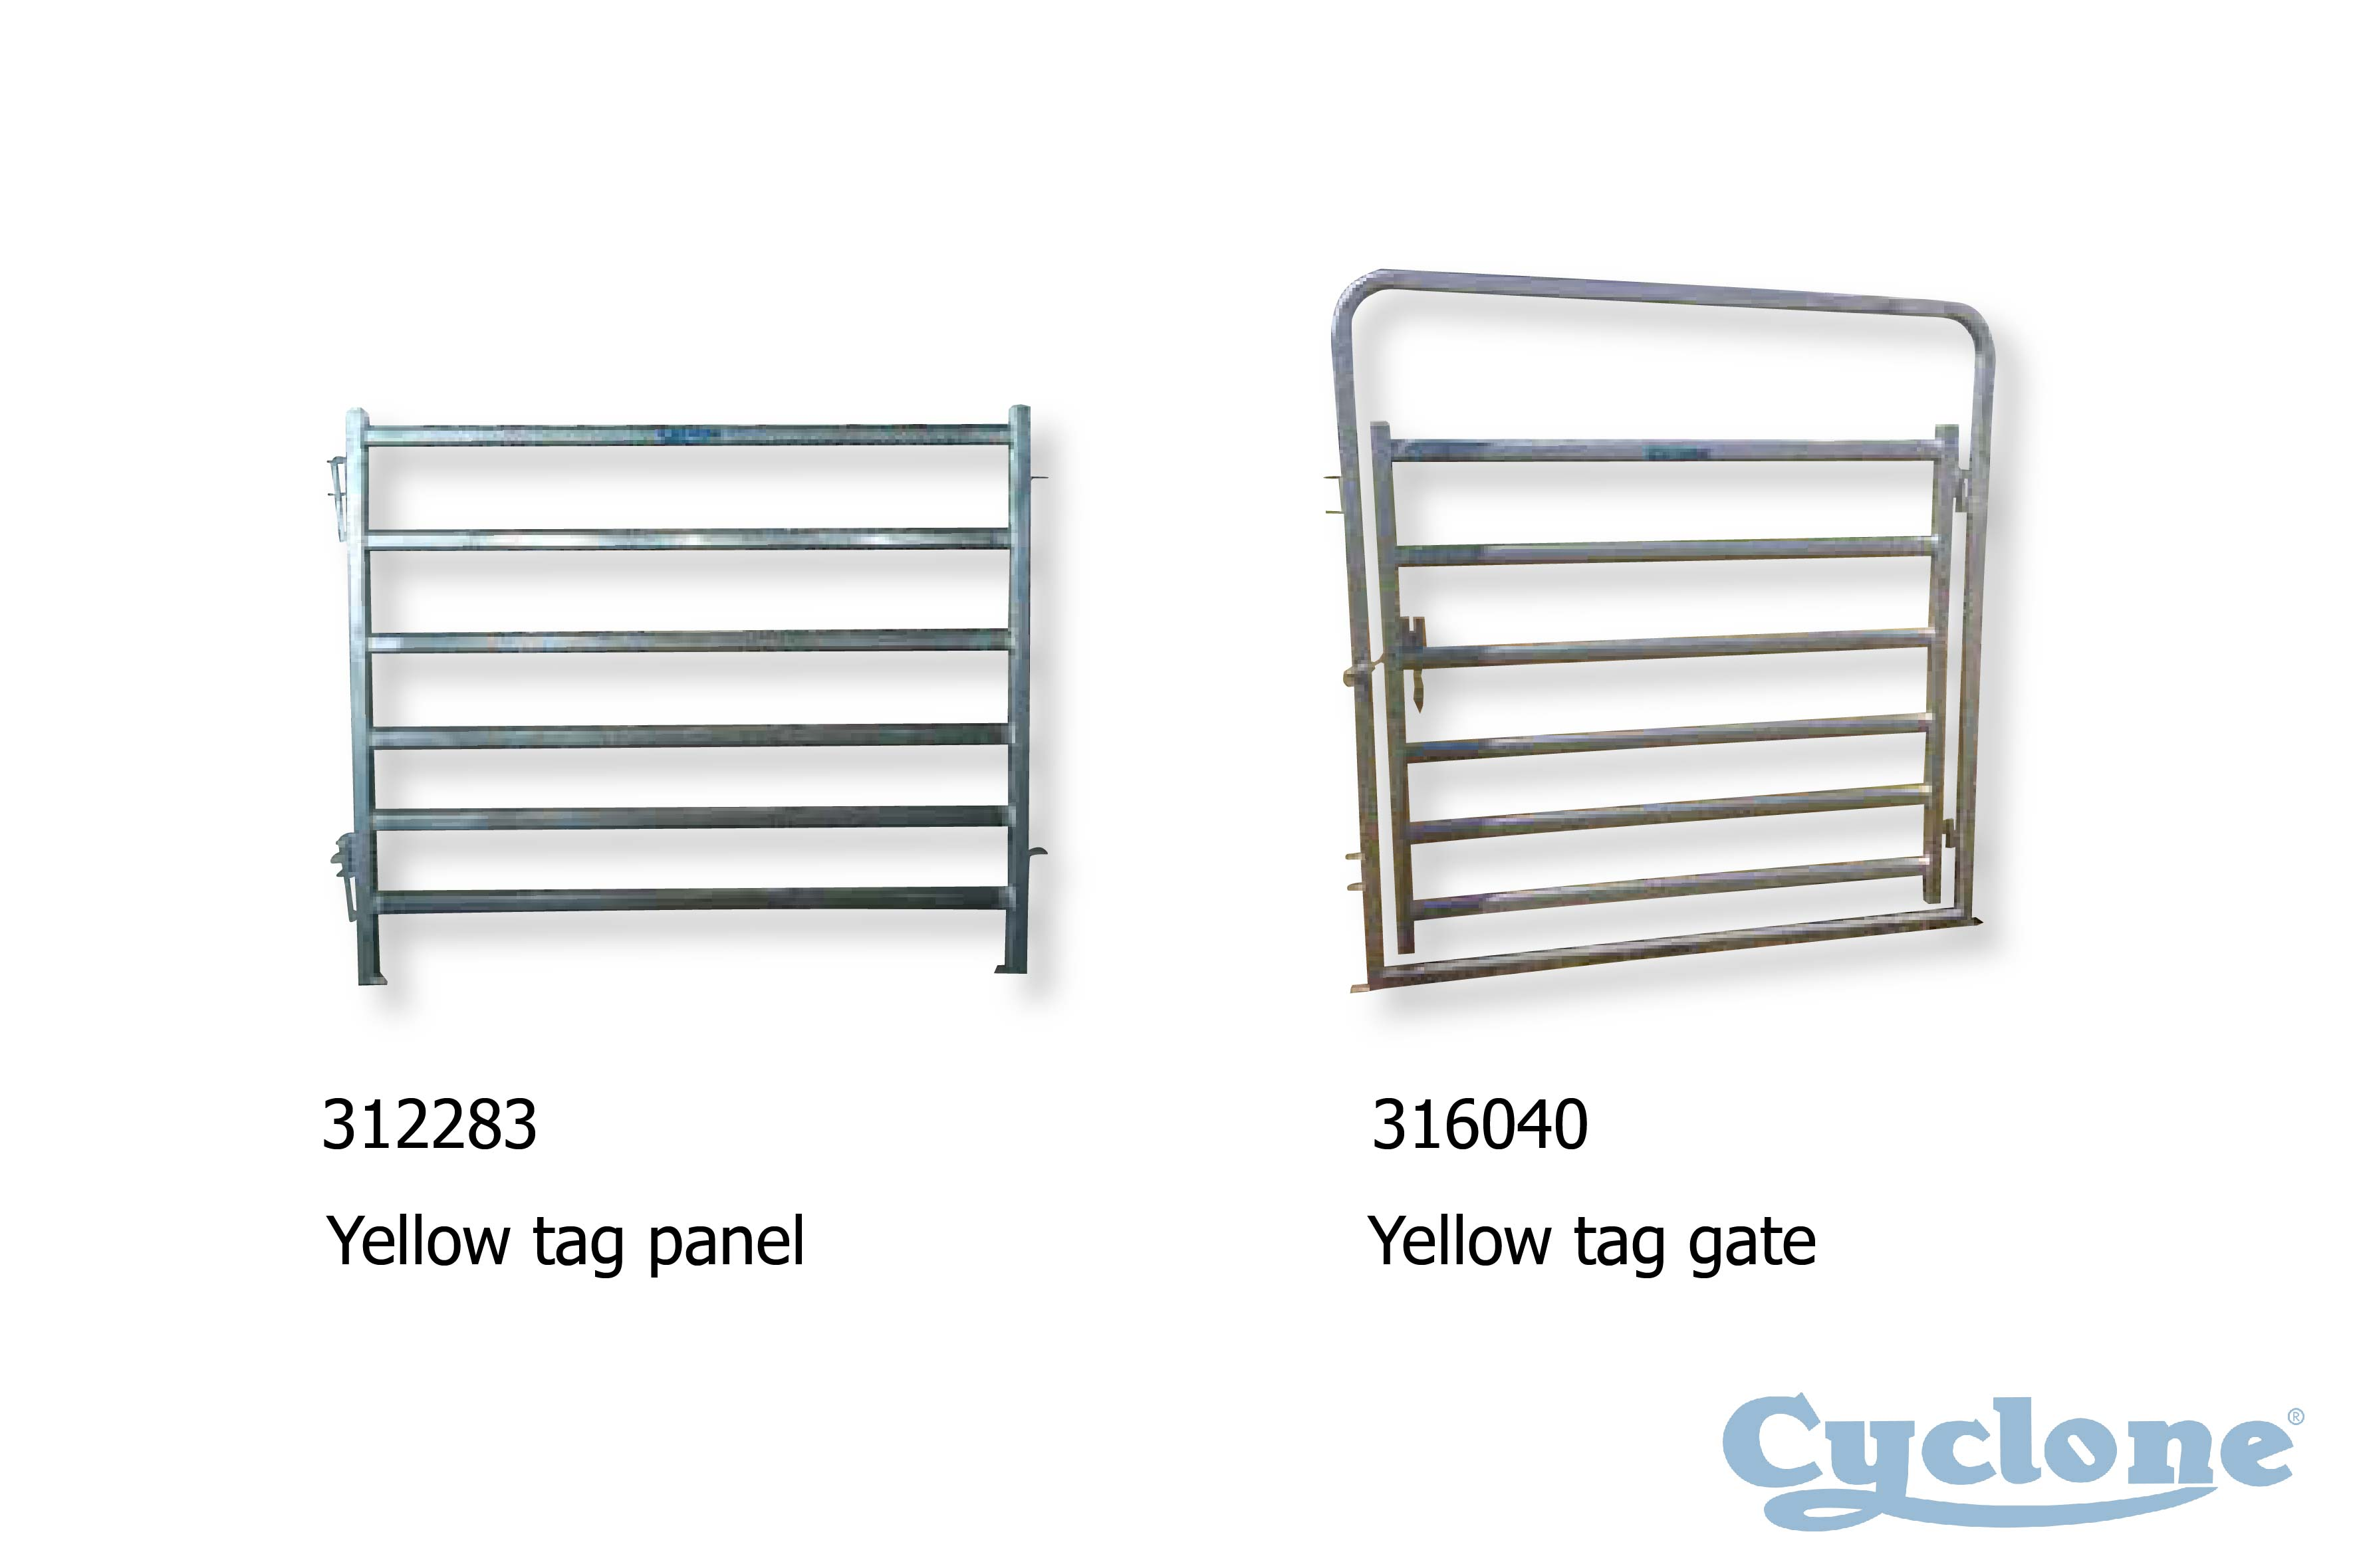 Cyclone Cattle Yard | cattle yard gate and panel